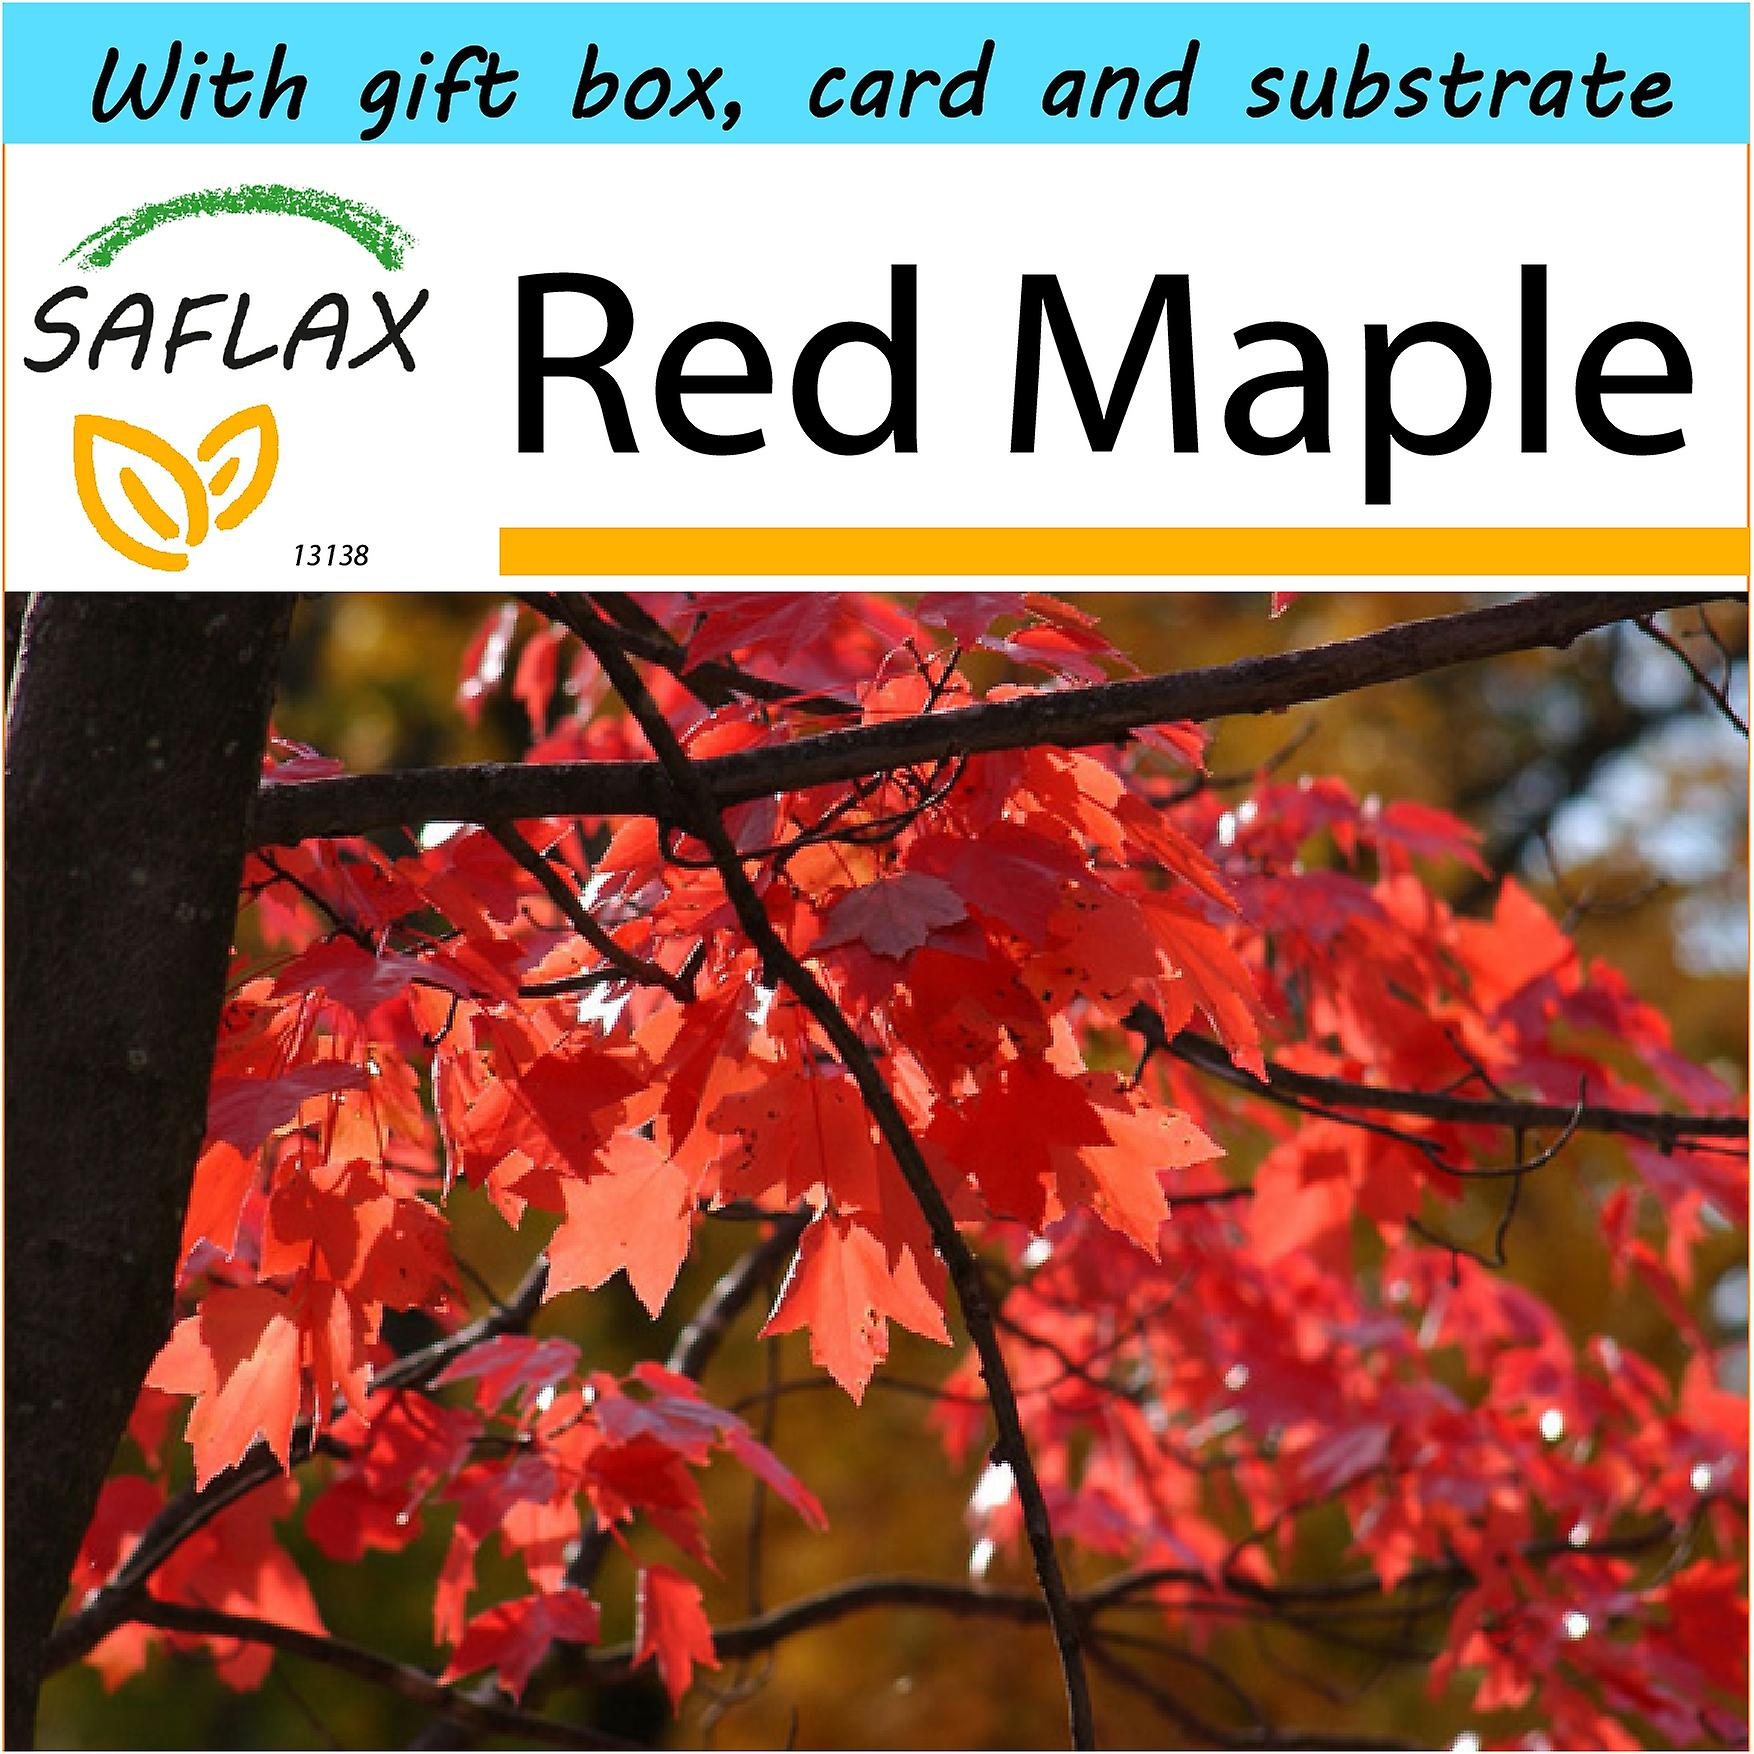 Saflax - Gift Set - 20 seeds - Red Maple - Erable rouge - Acero rosso  - Arce rojo - Rotahorn